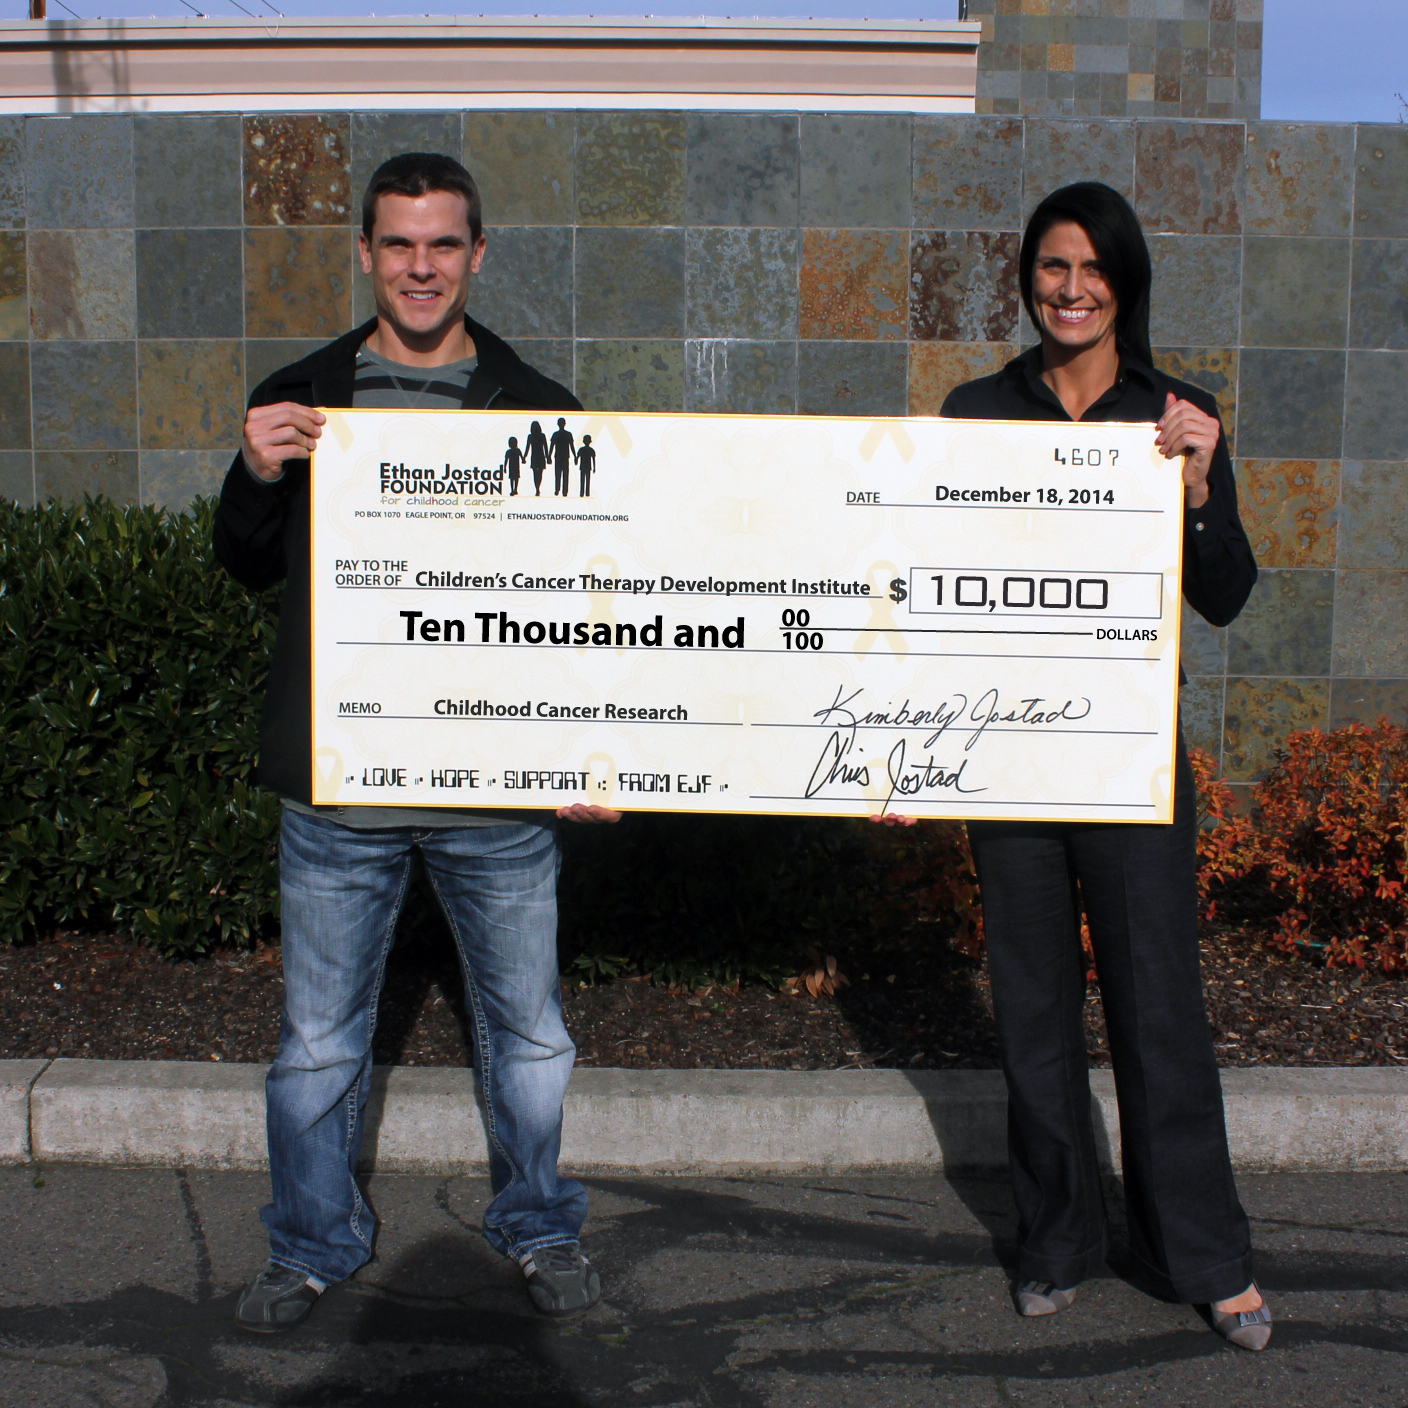 Chris & Kim Jostad, co-founders of EJF and the donation to cc-TDI in December of 2014.